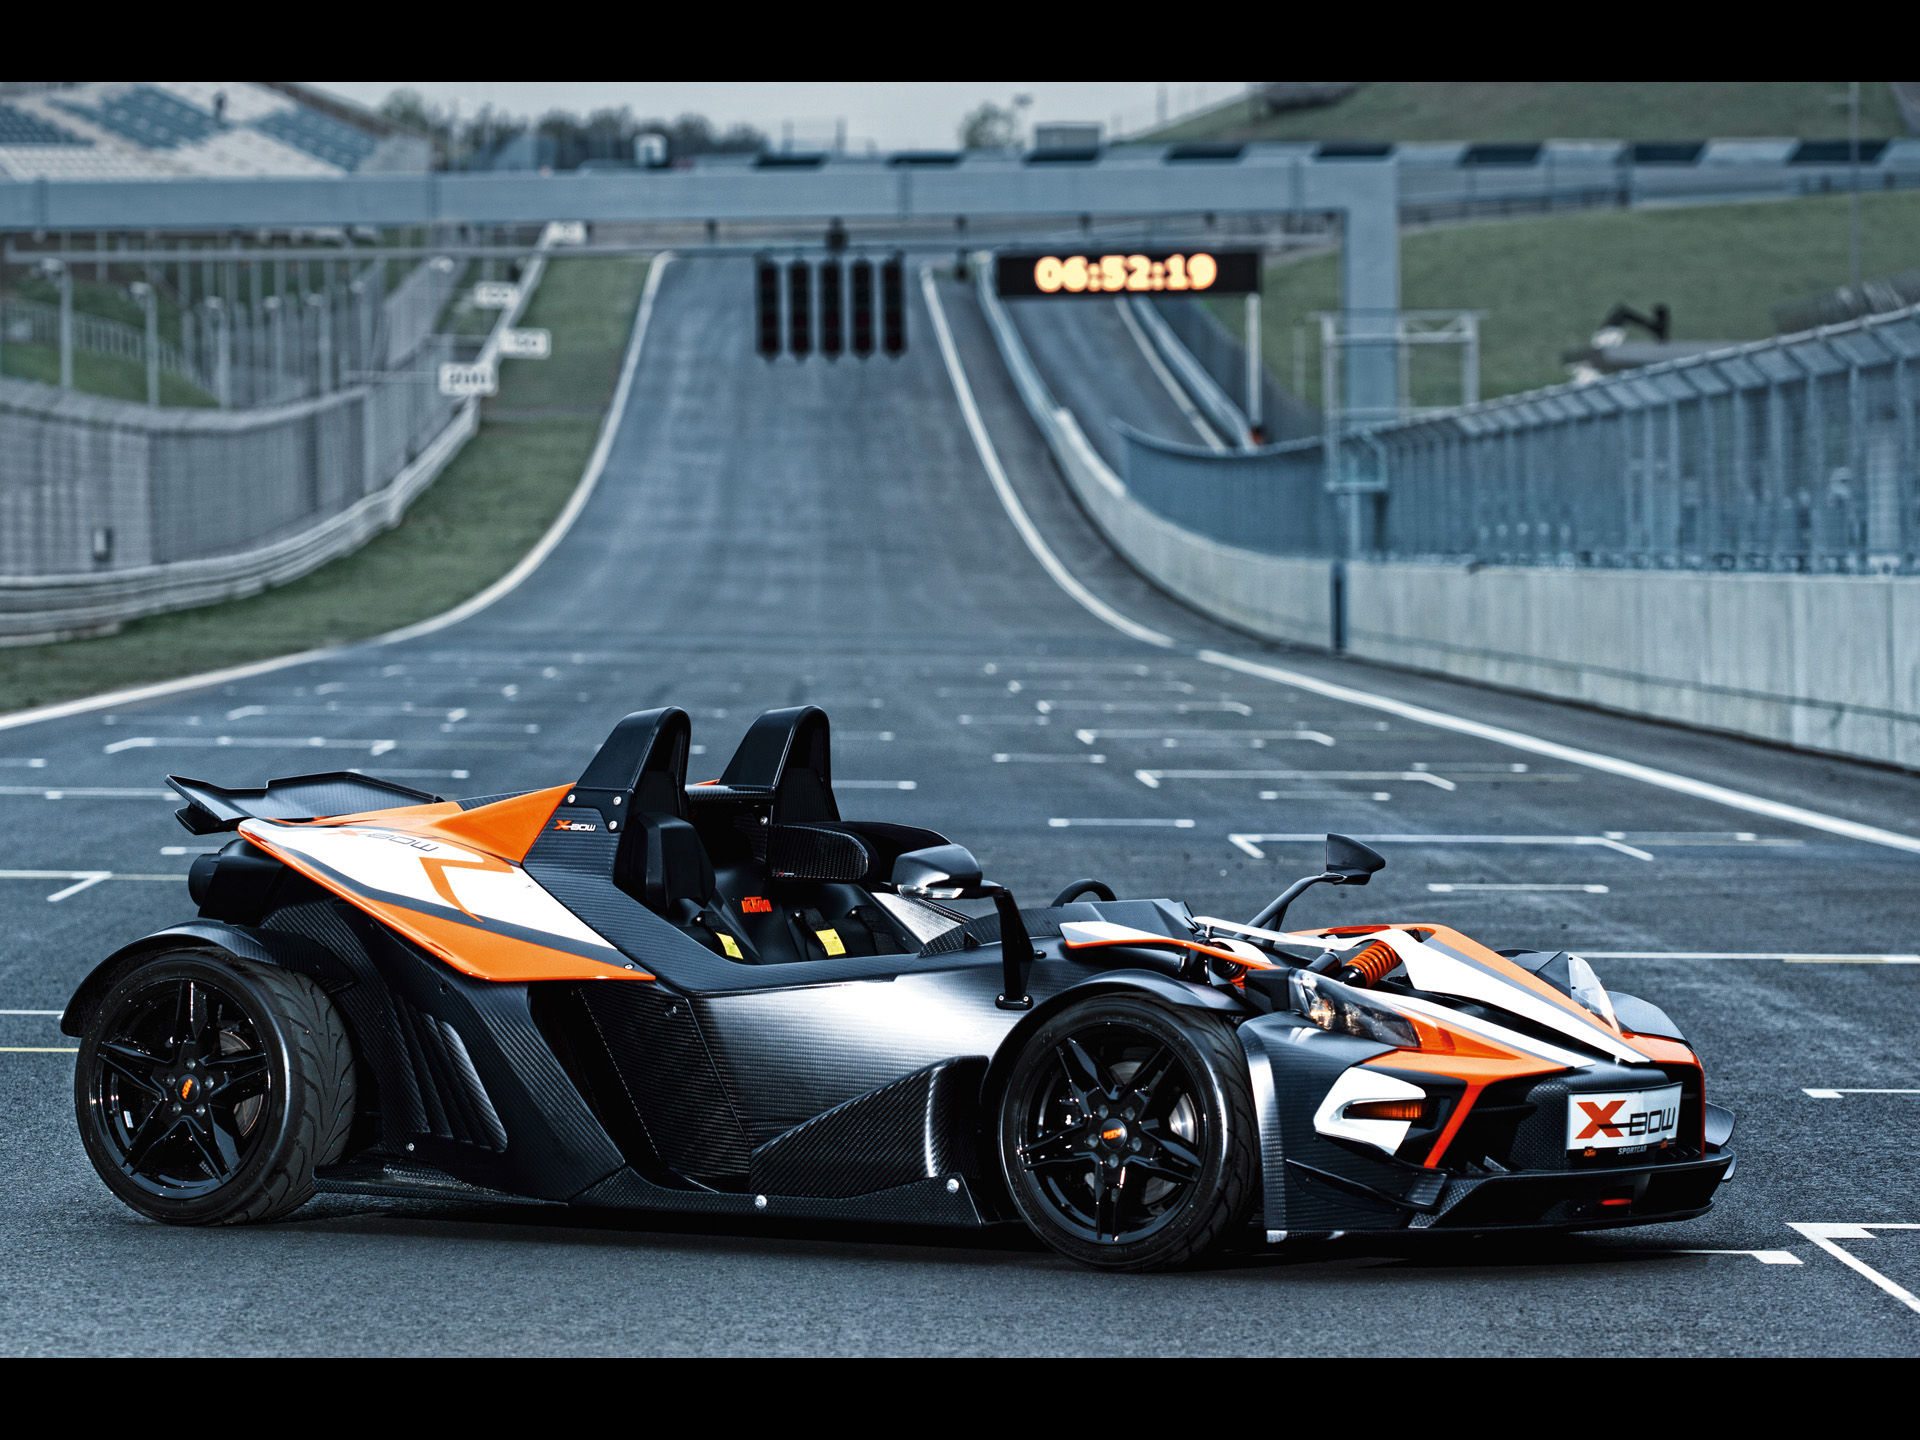 Ktm Xbow Side View Wallpapers Ktm Xbow Side View Stock Photos